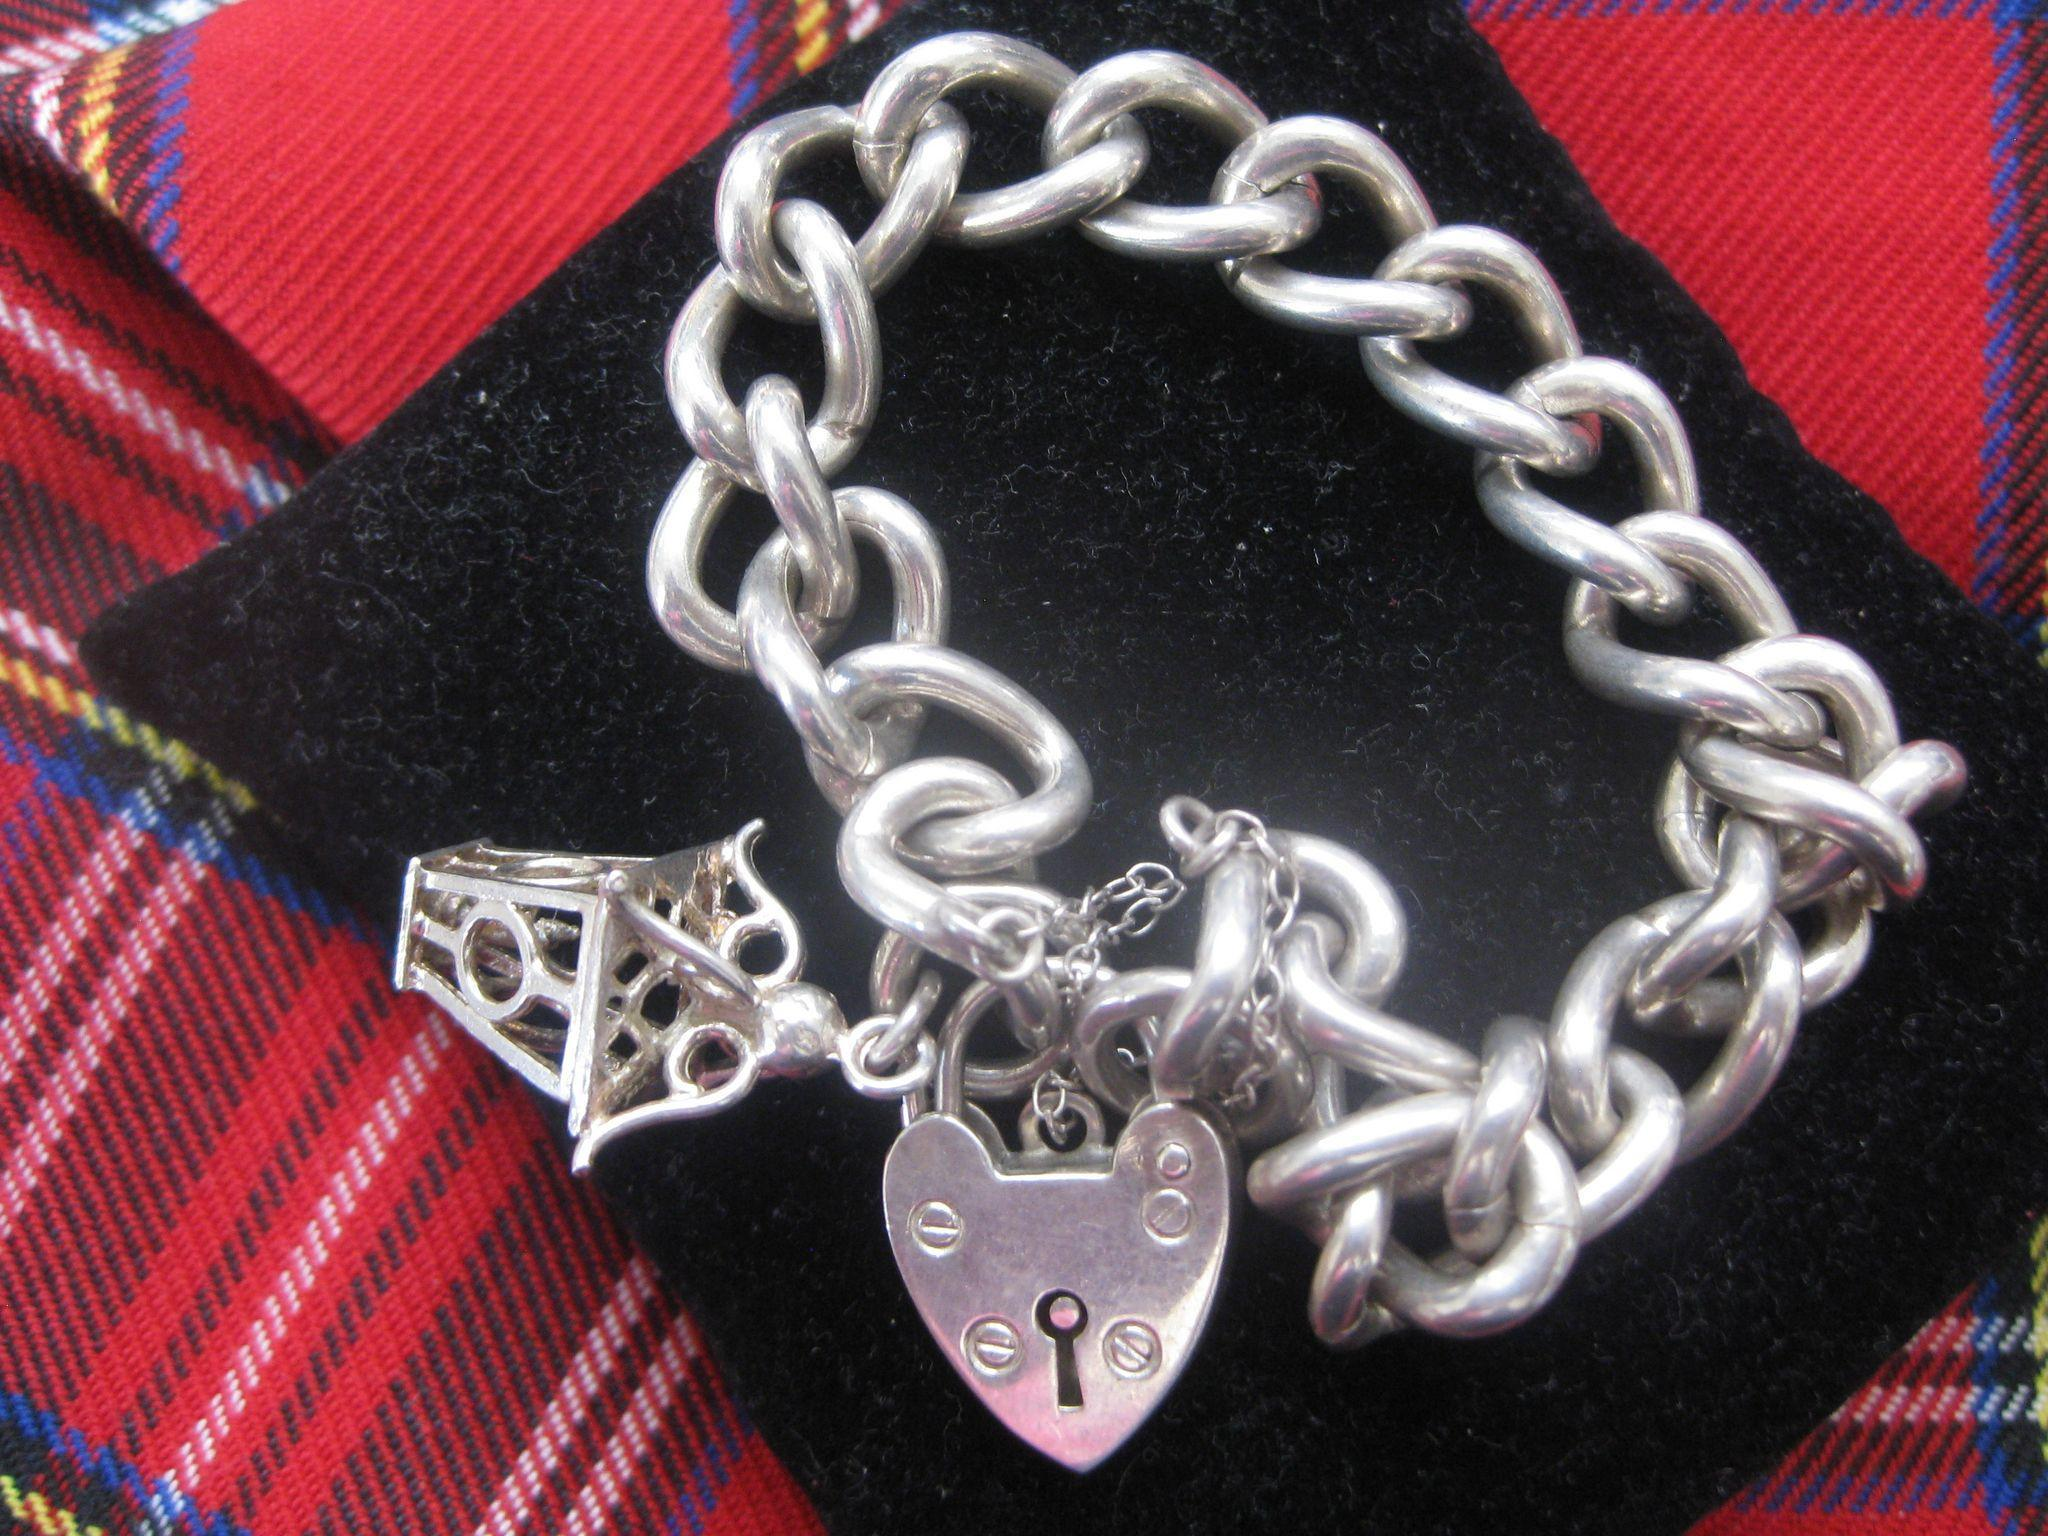 Heavy Vintage Chunky Silver Bracelet w/Charm and Heart Lock